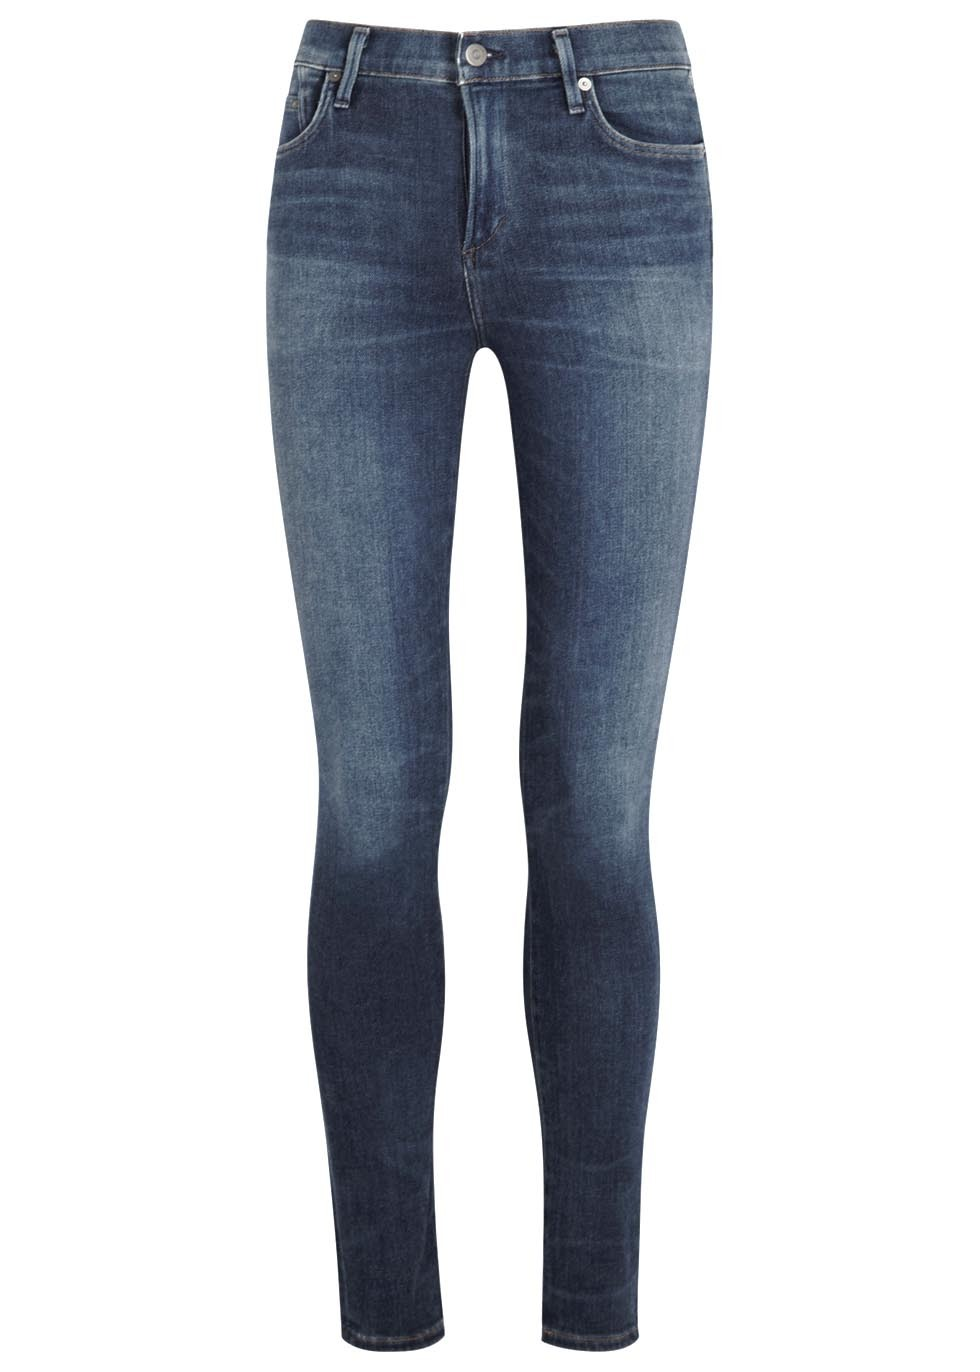 Rocket Sculpt Blue Skinny Jeans Size W29 - style: skinny leg; length: standard; pattern: plain; waist: high rise; pocket detail: traditional 5 pocket; predominant colour: denim; occasions: casual; fibres: cotton - stretch; jeans detail: whiskering, shading down centre of thigh; texture group: denim; pattern type: fabric; season: a/w 2015; wardrobe: basic